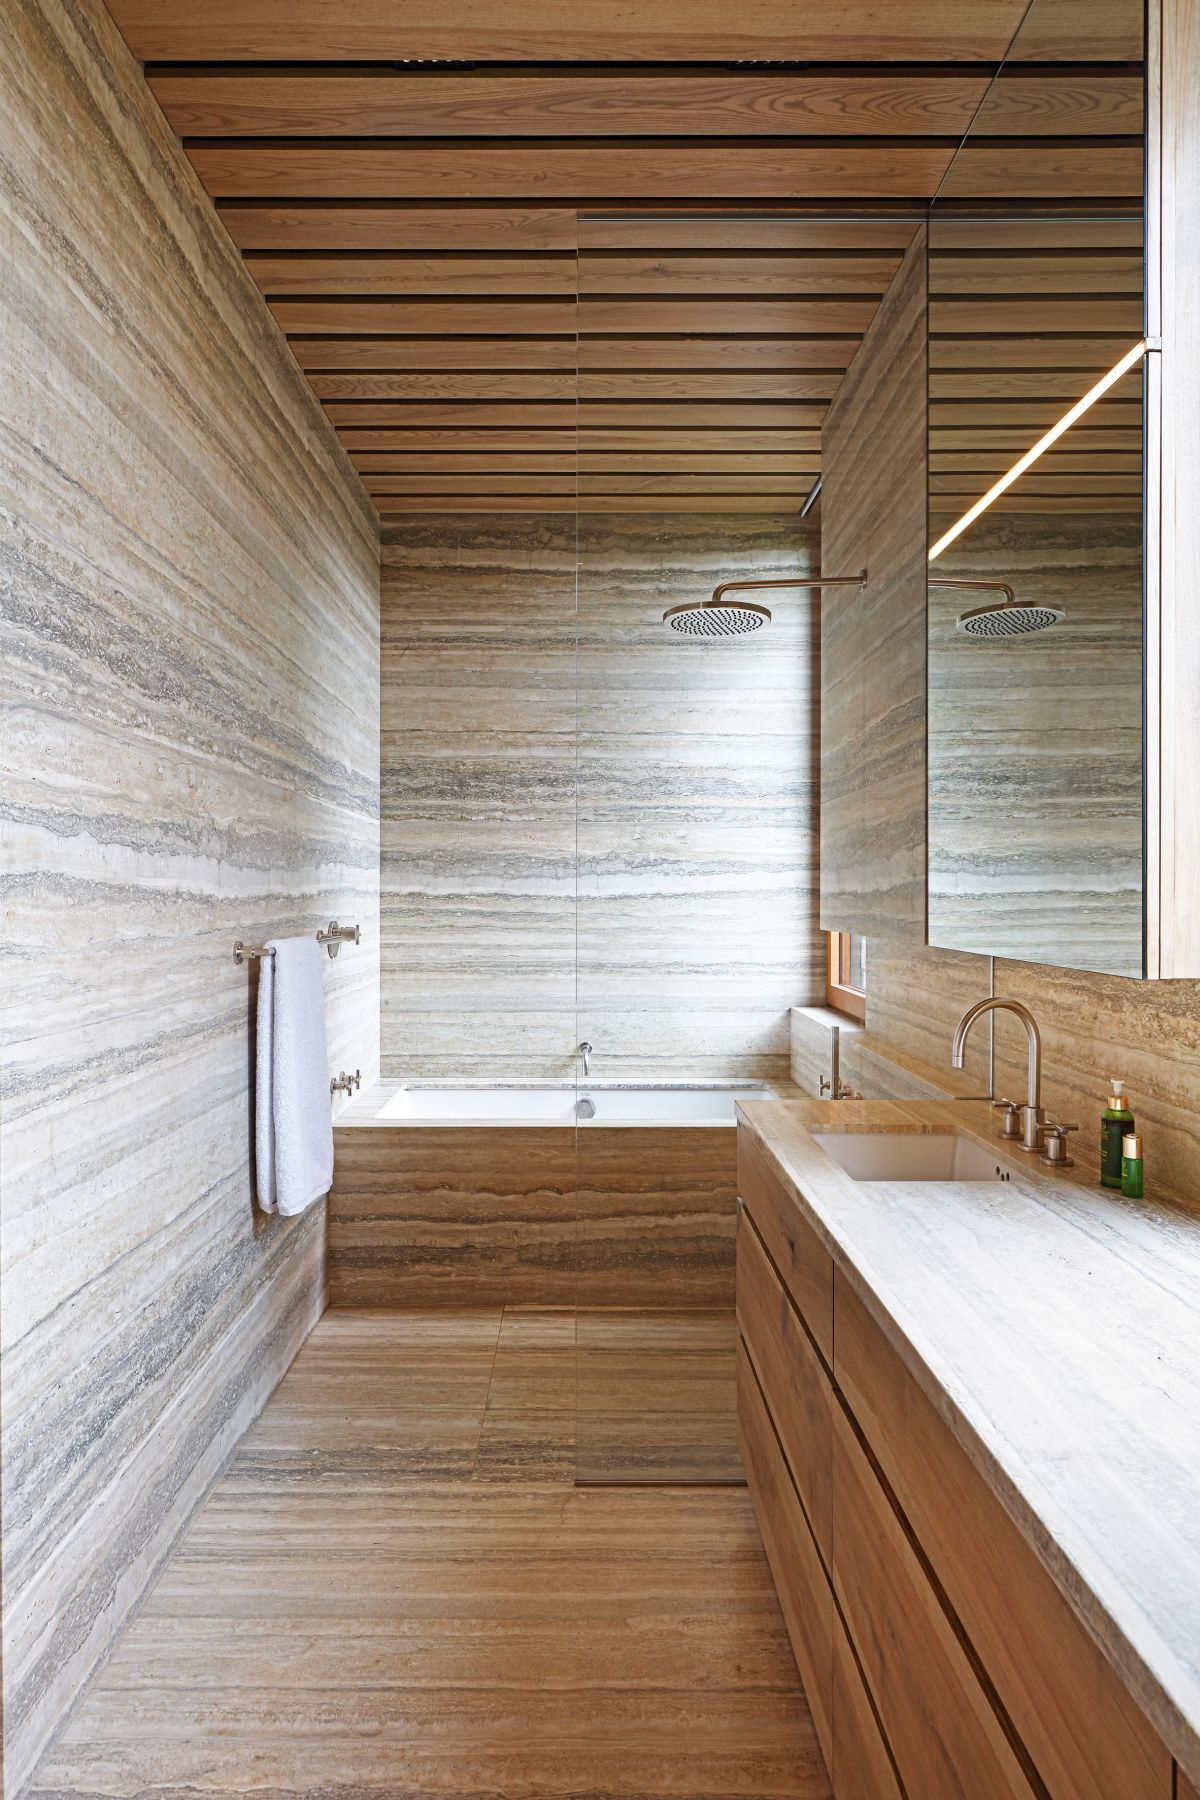 This bathroom has a very inviting and sauna-like feel due to all the wood